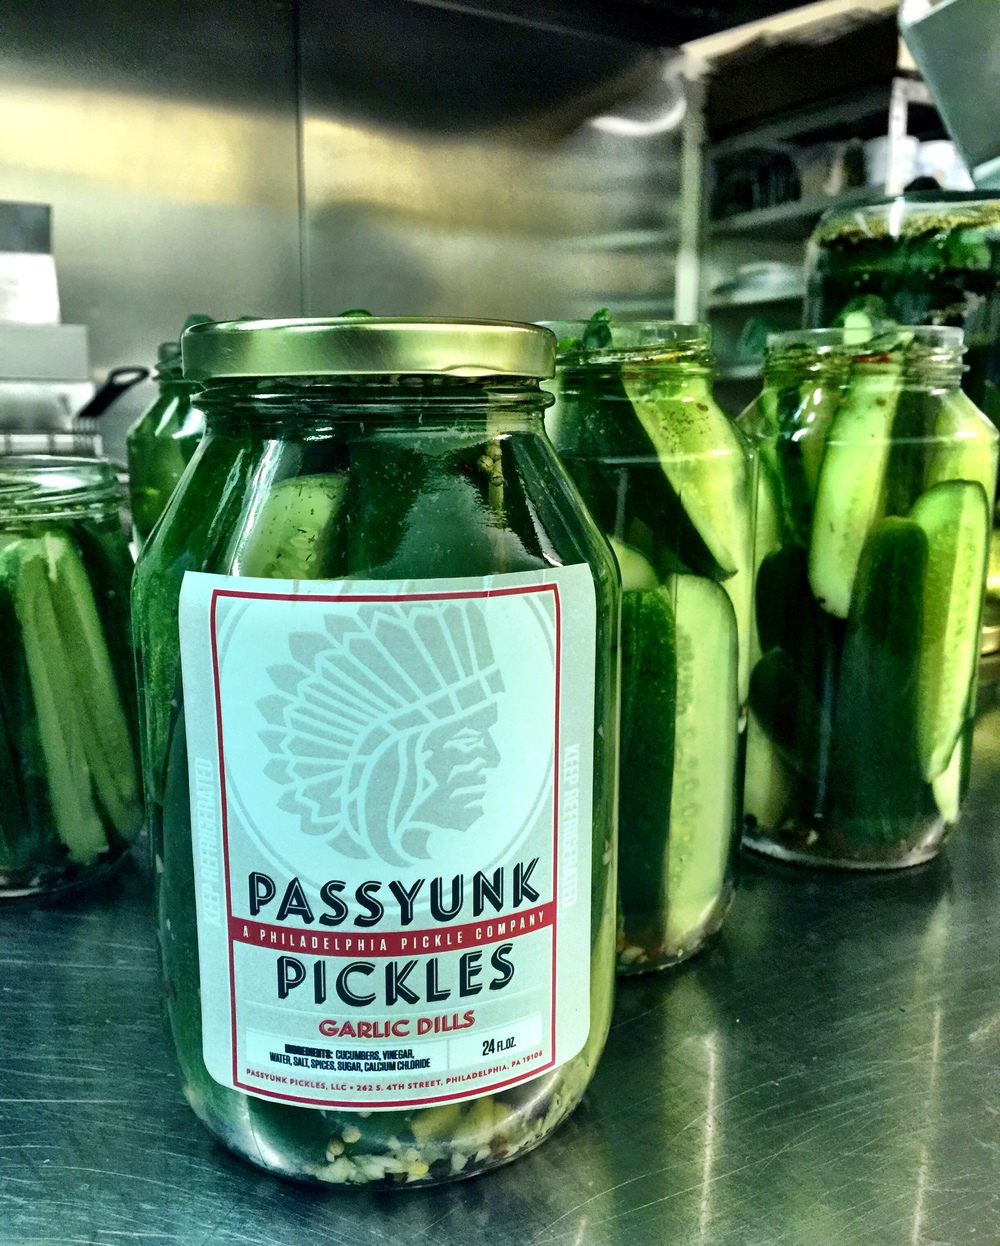 Credit: Passyunk Pickles